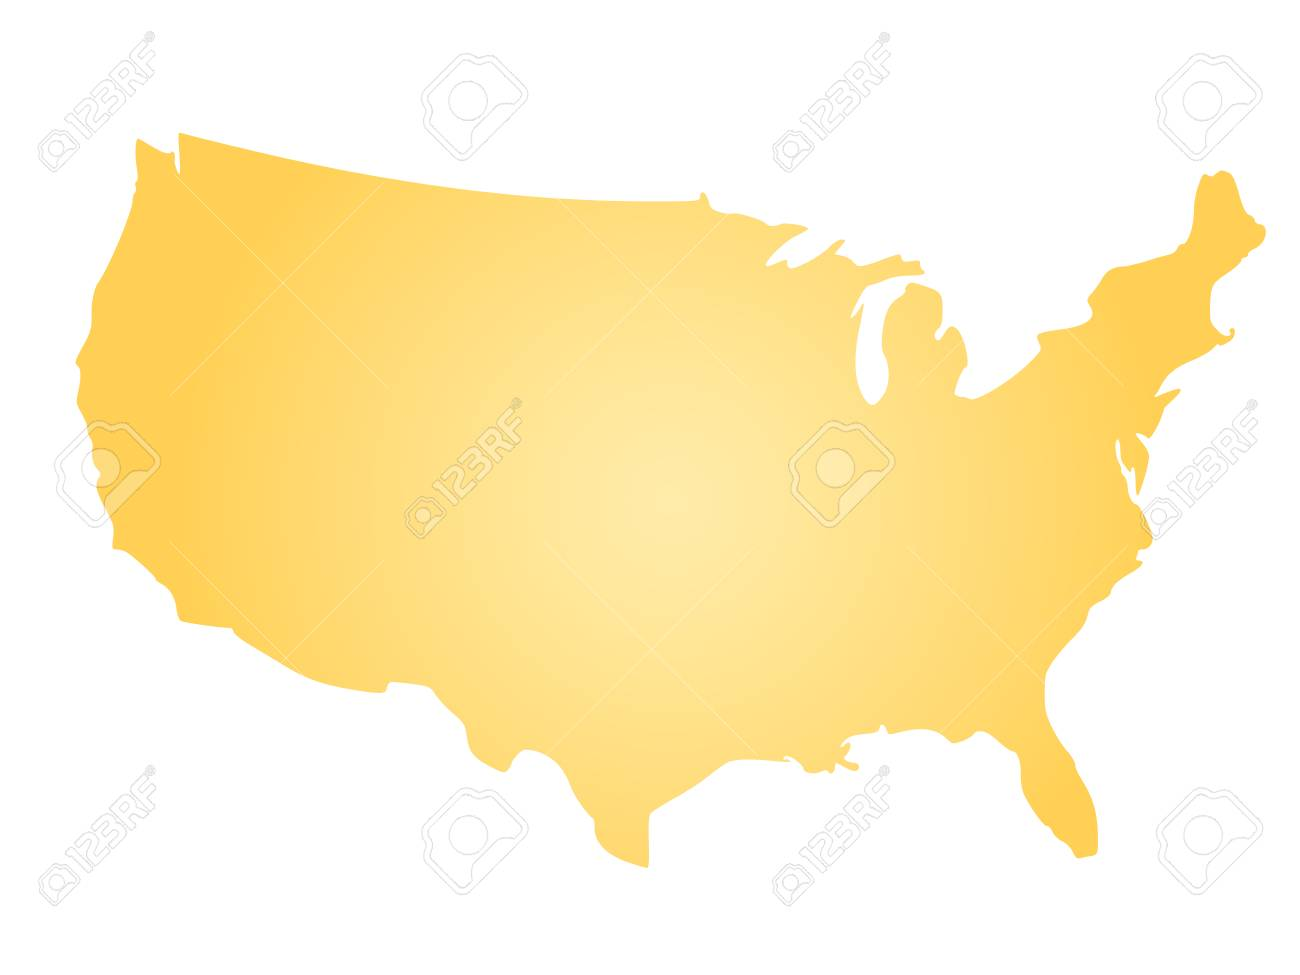 vector yellow radial gradient silhouette map of united states of america aka usa vector illustration